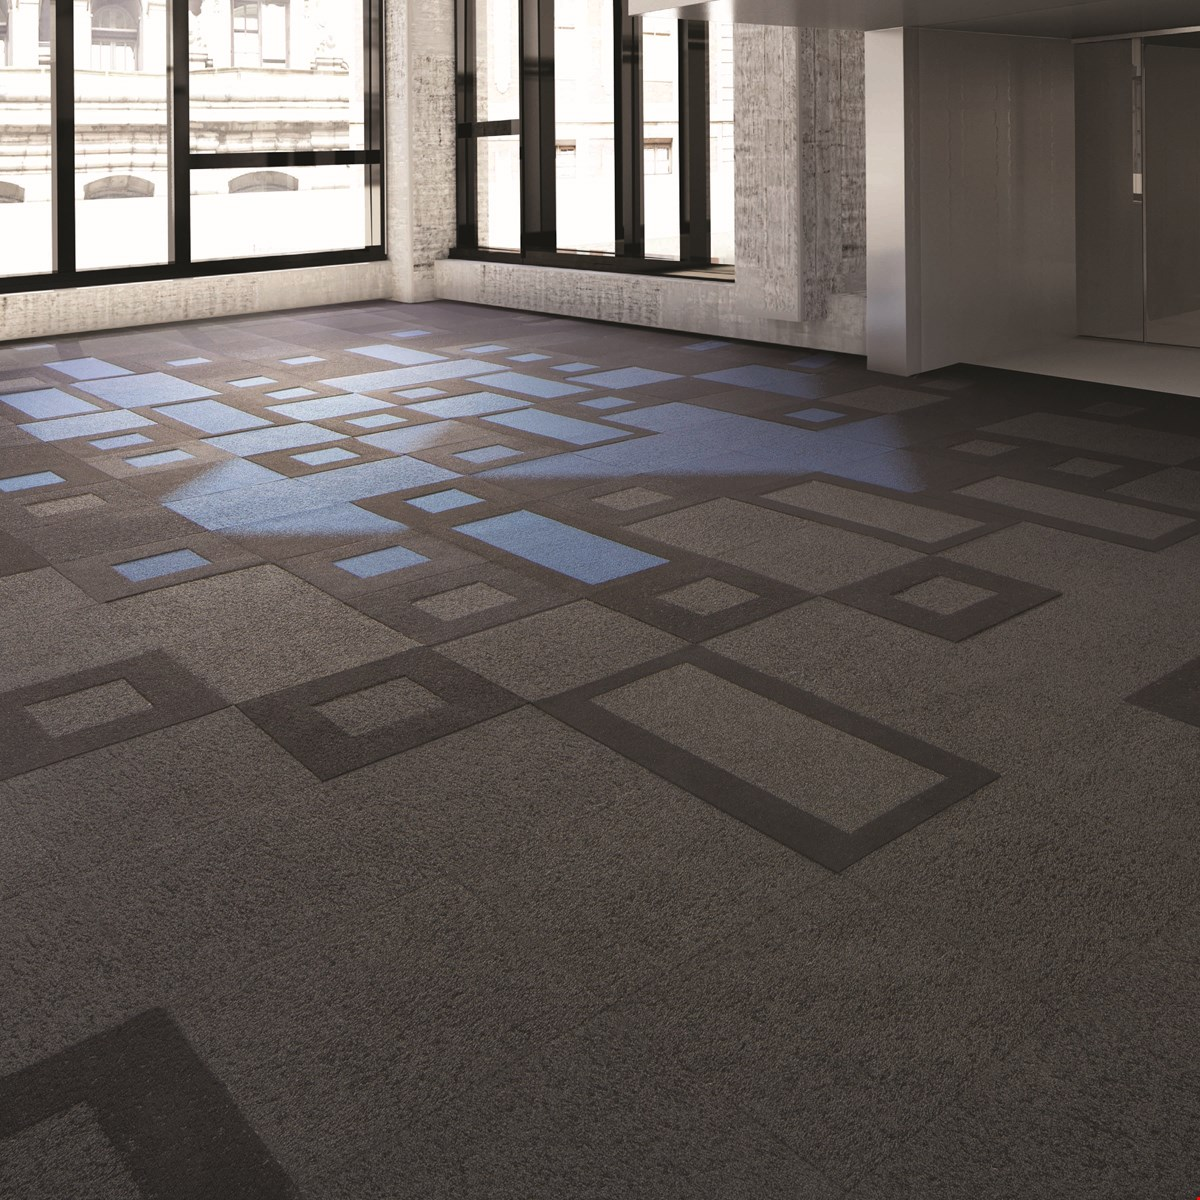 Mohawk Group S Topography Carpet Tile Collection Wins Best